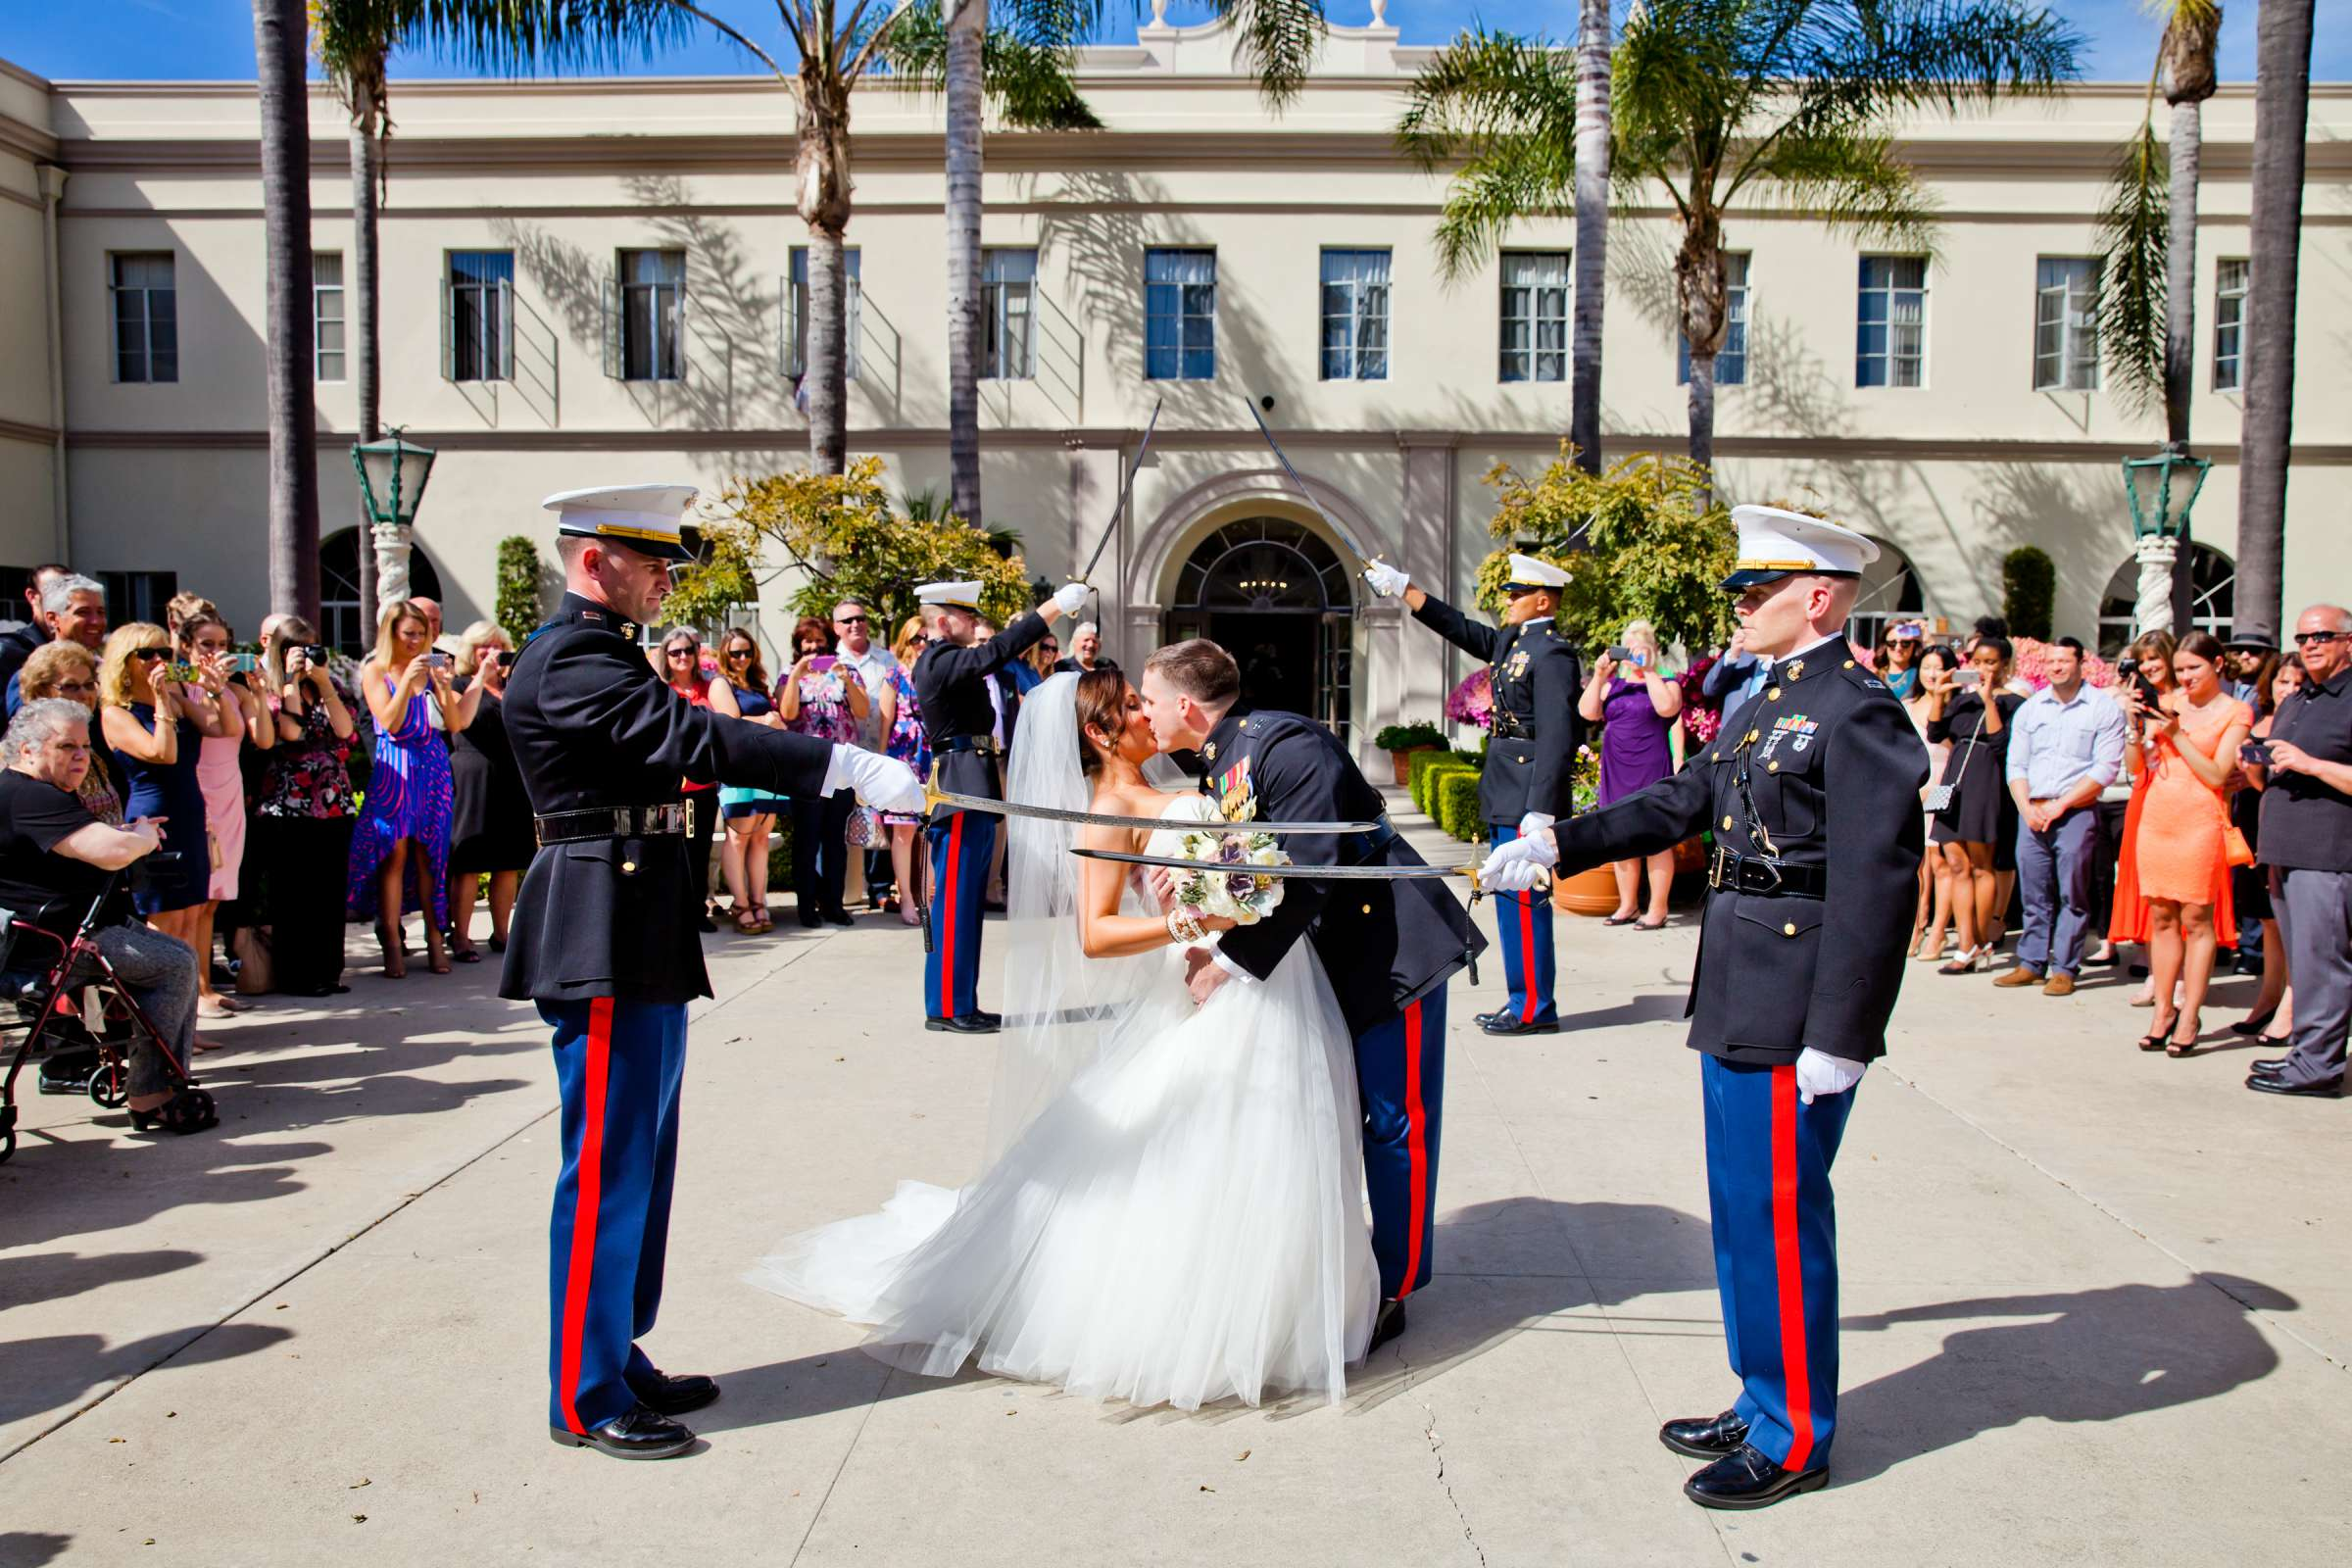 Admiral Kidd Club Wedding coordinated by Founders Chapel, Ashley and Andrew Wedding Photo #145446 by True Photography